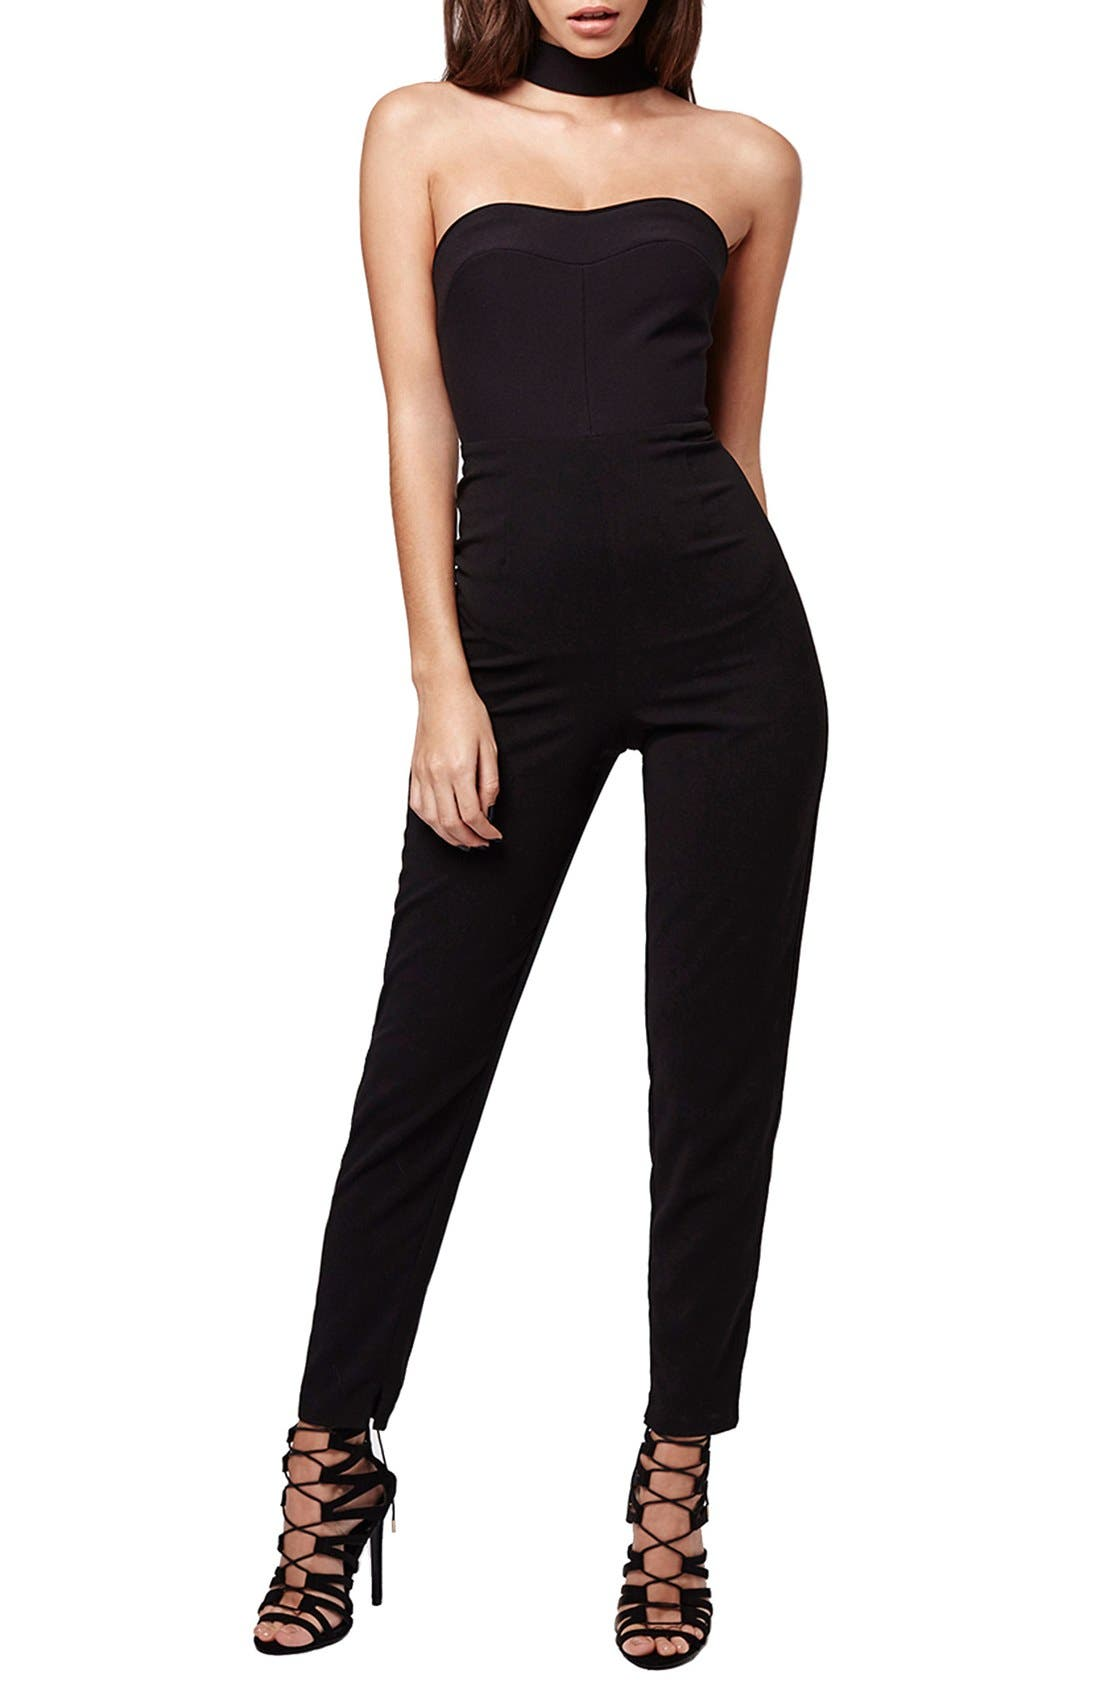 Alternate Image 1 Selected - KENDALL + KYLIE at Topshop High Neck Jumpsuit